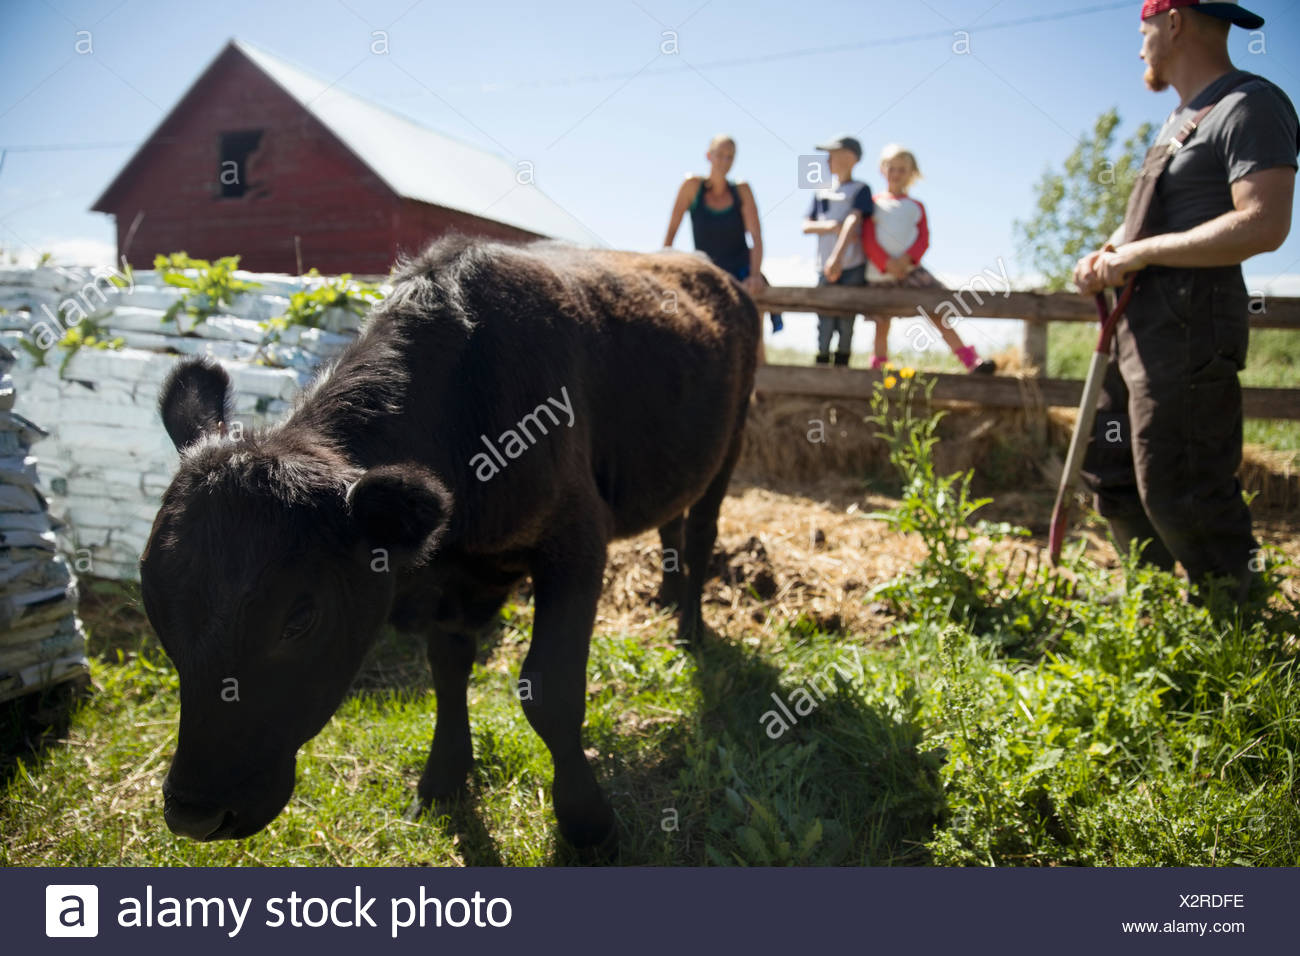 Family farmers watching cow grazing on sunny farm - Stock Image